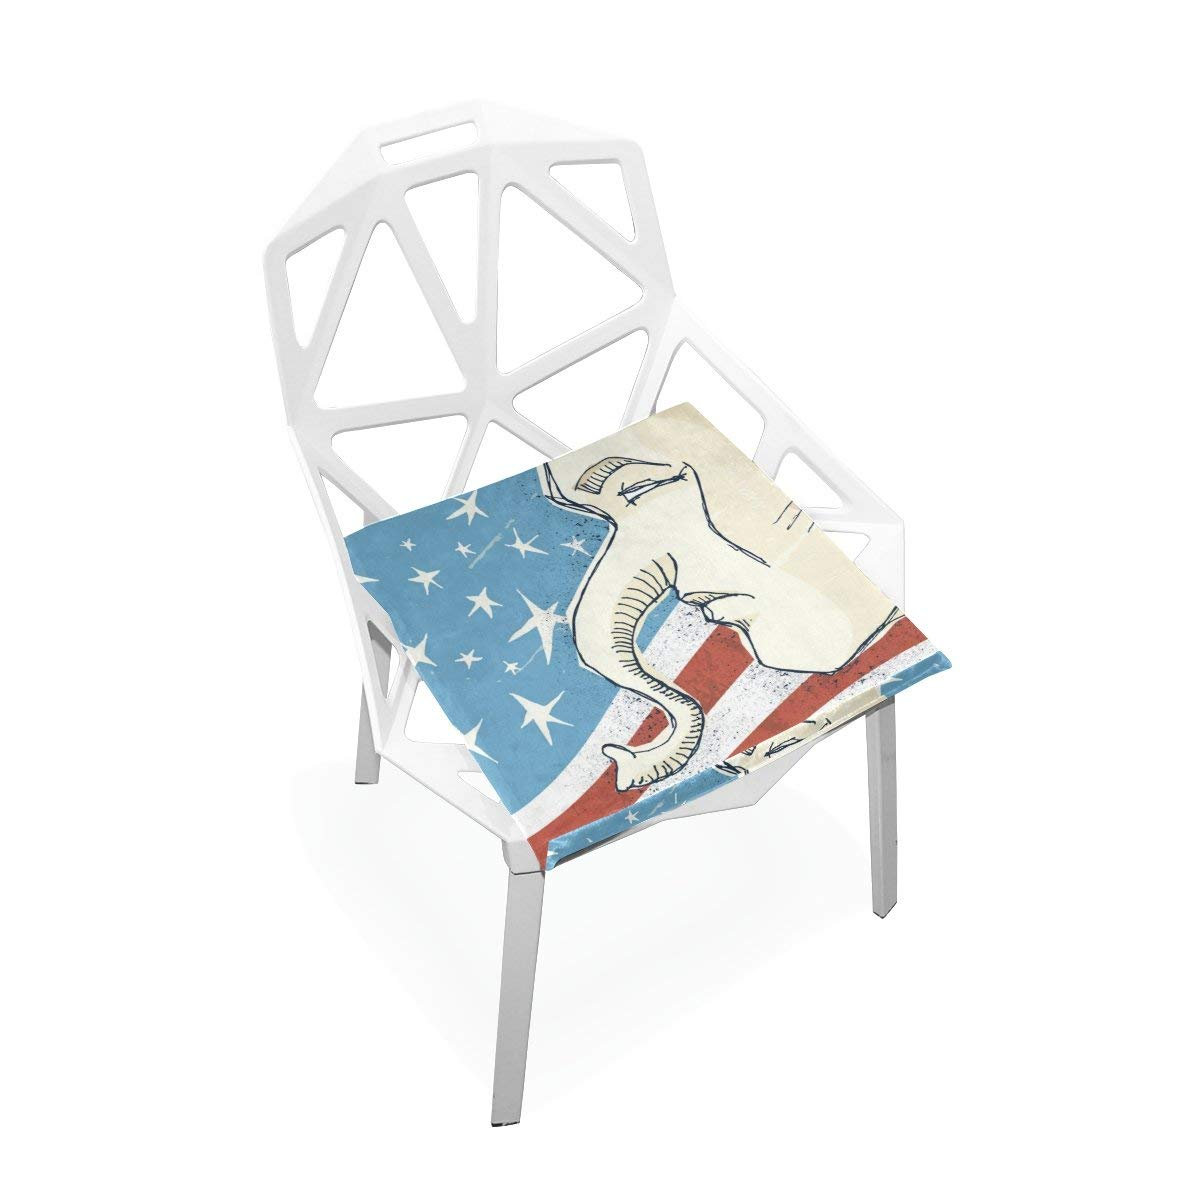 """PLAO Seat Cushion Pad, Republican Illustration Cushions Seat Nonslip Chair Mats for Car Office Kitchen Chairs 16"""" X 16"""""""